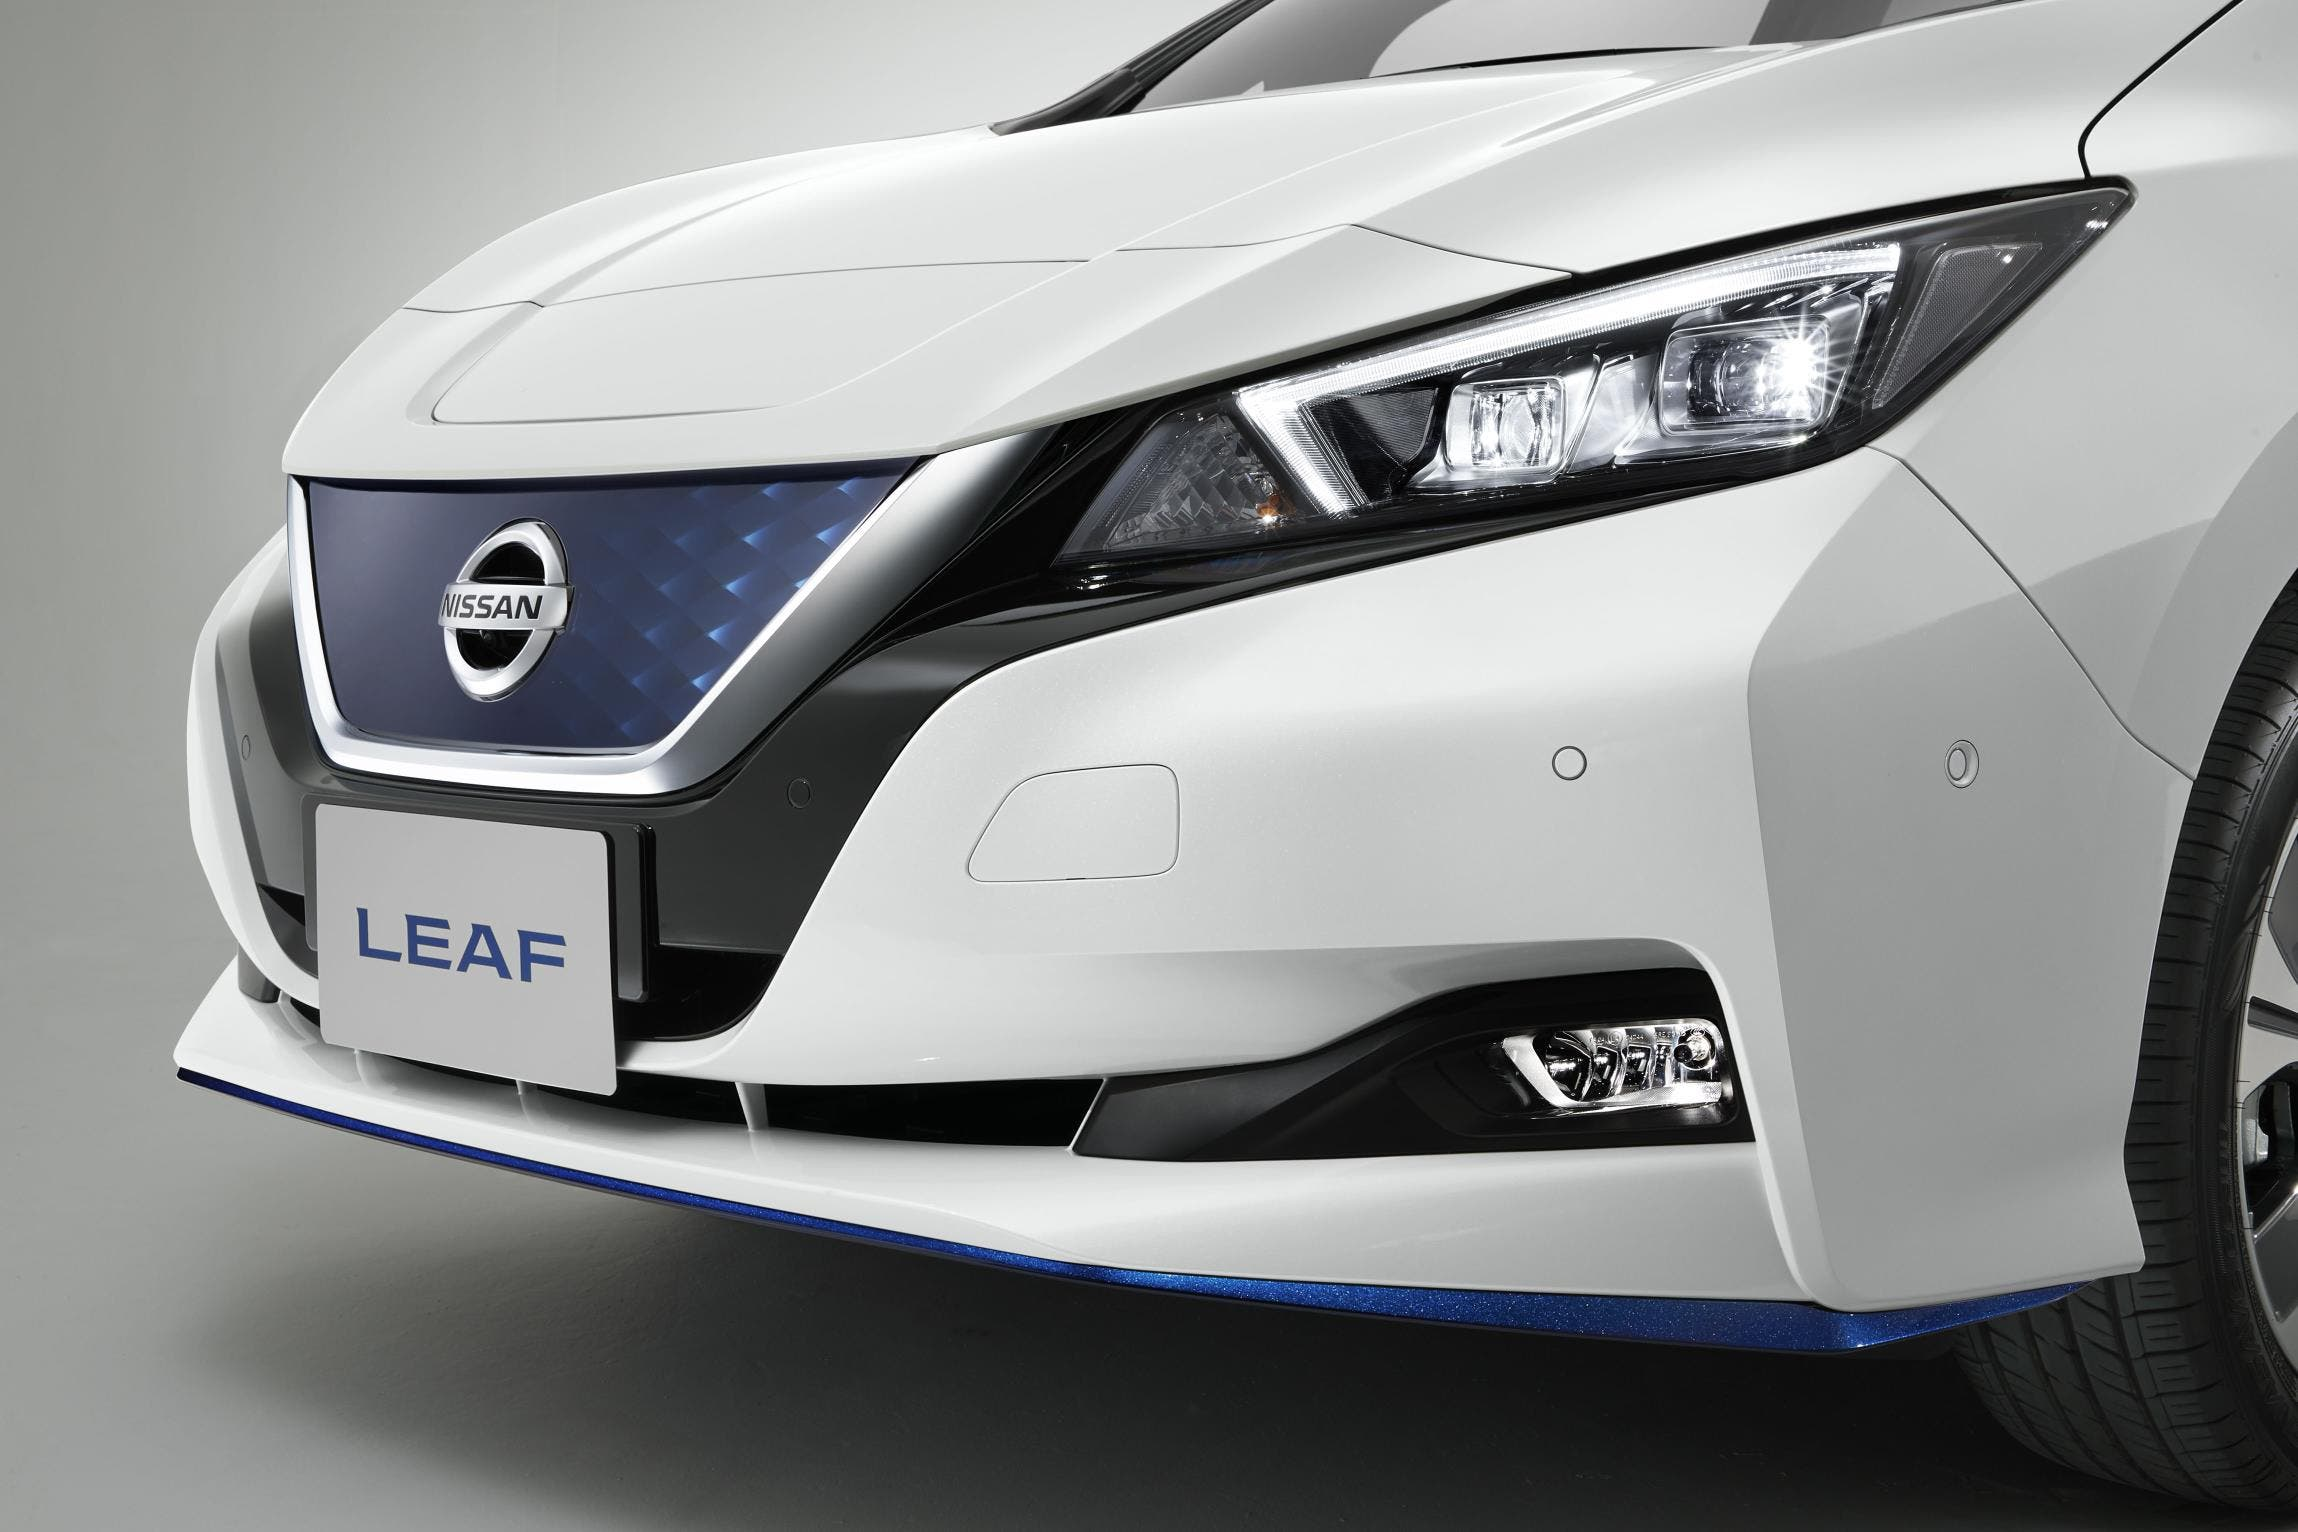 Nissan LEAF e+ (60kWh Battery) — Was It Worth The Wait? | CleanTechnica